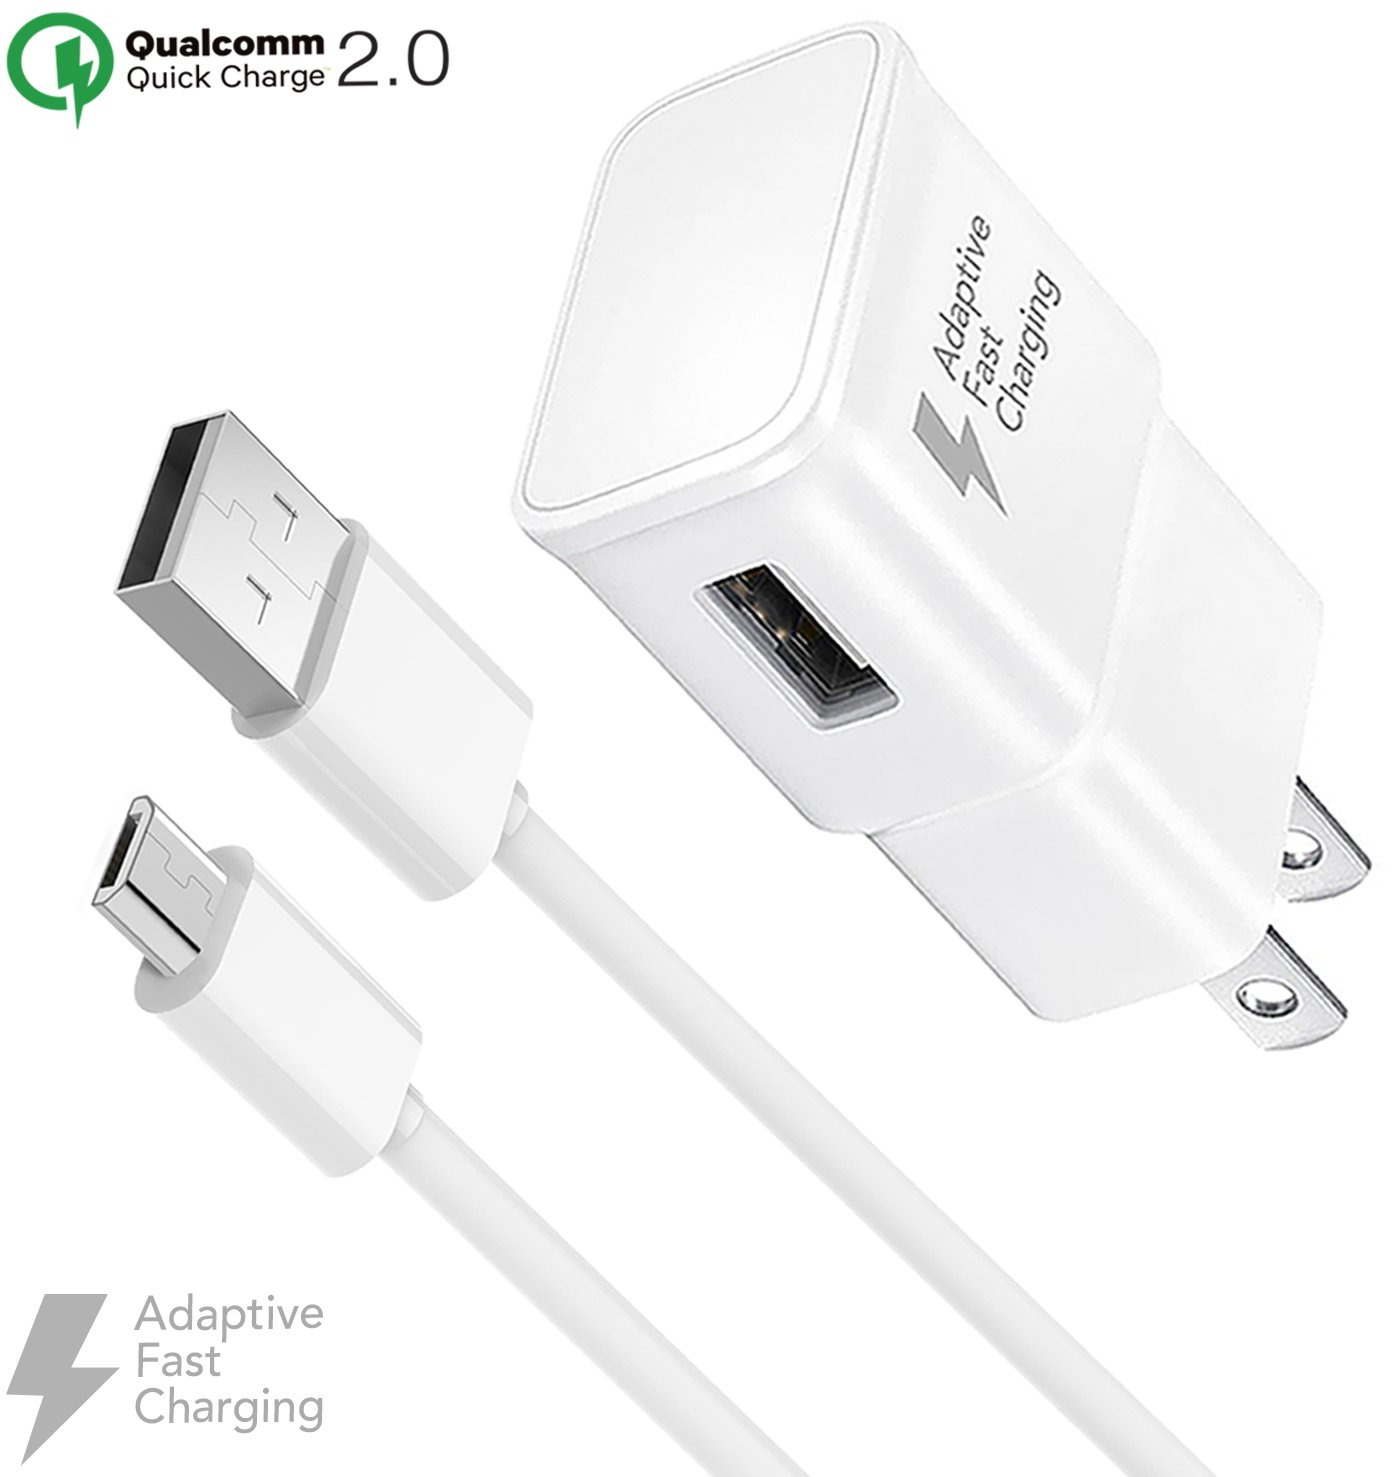 Ixir Adaptive Fast Charger Kit for Samsung Galaxy